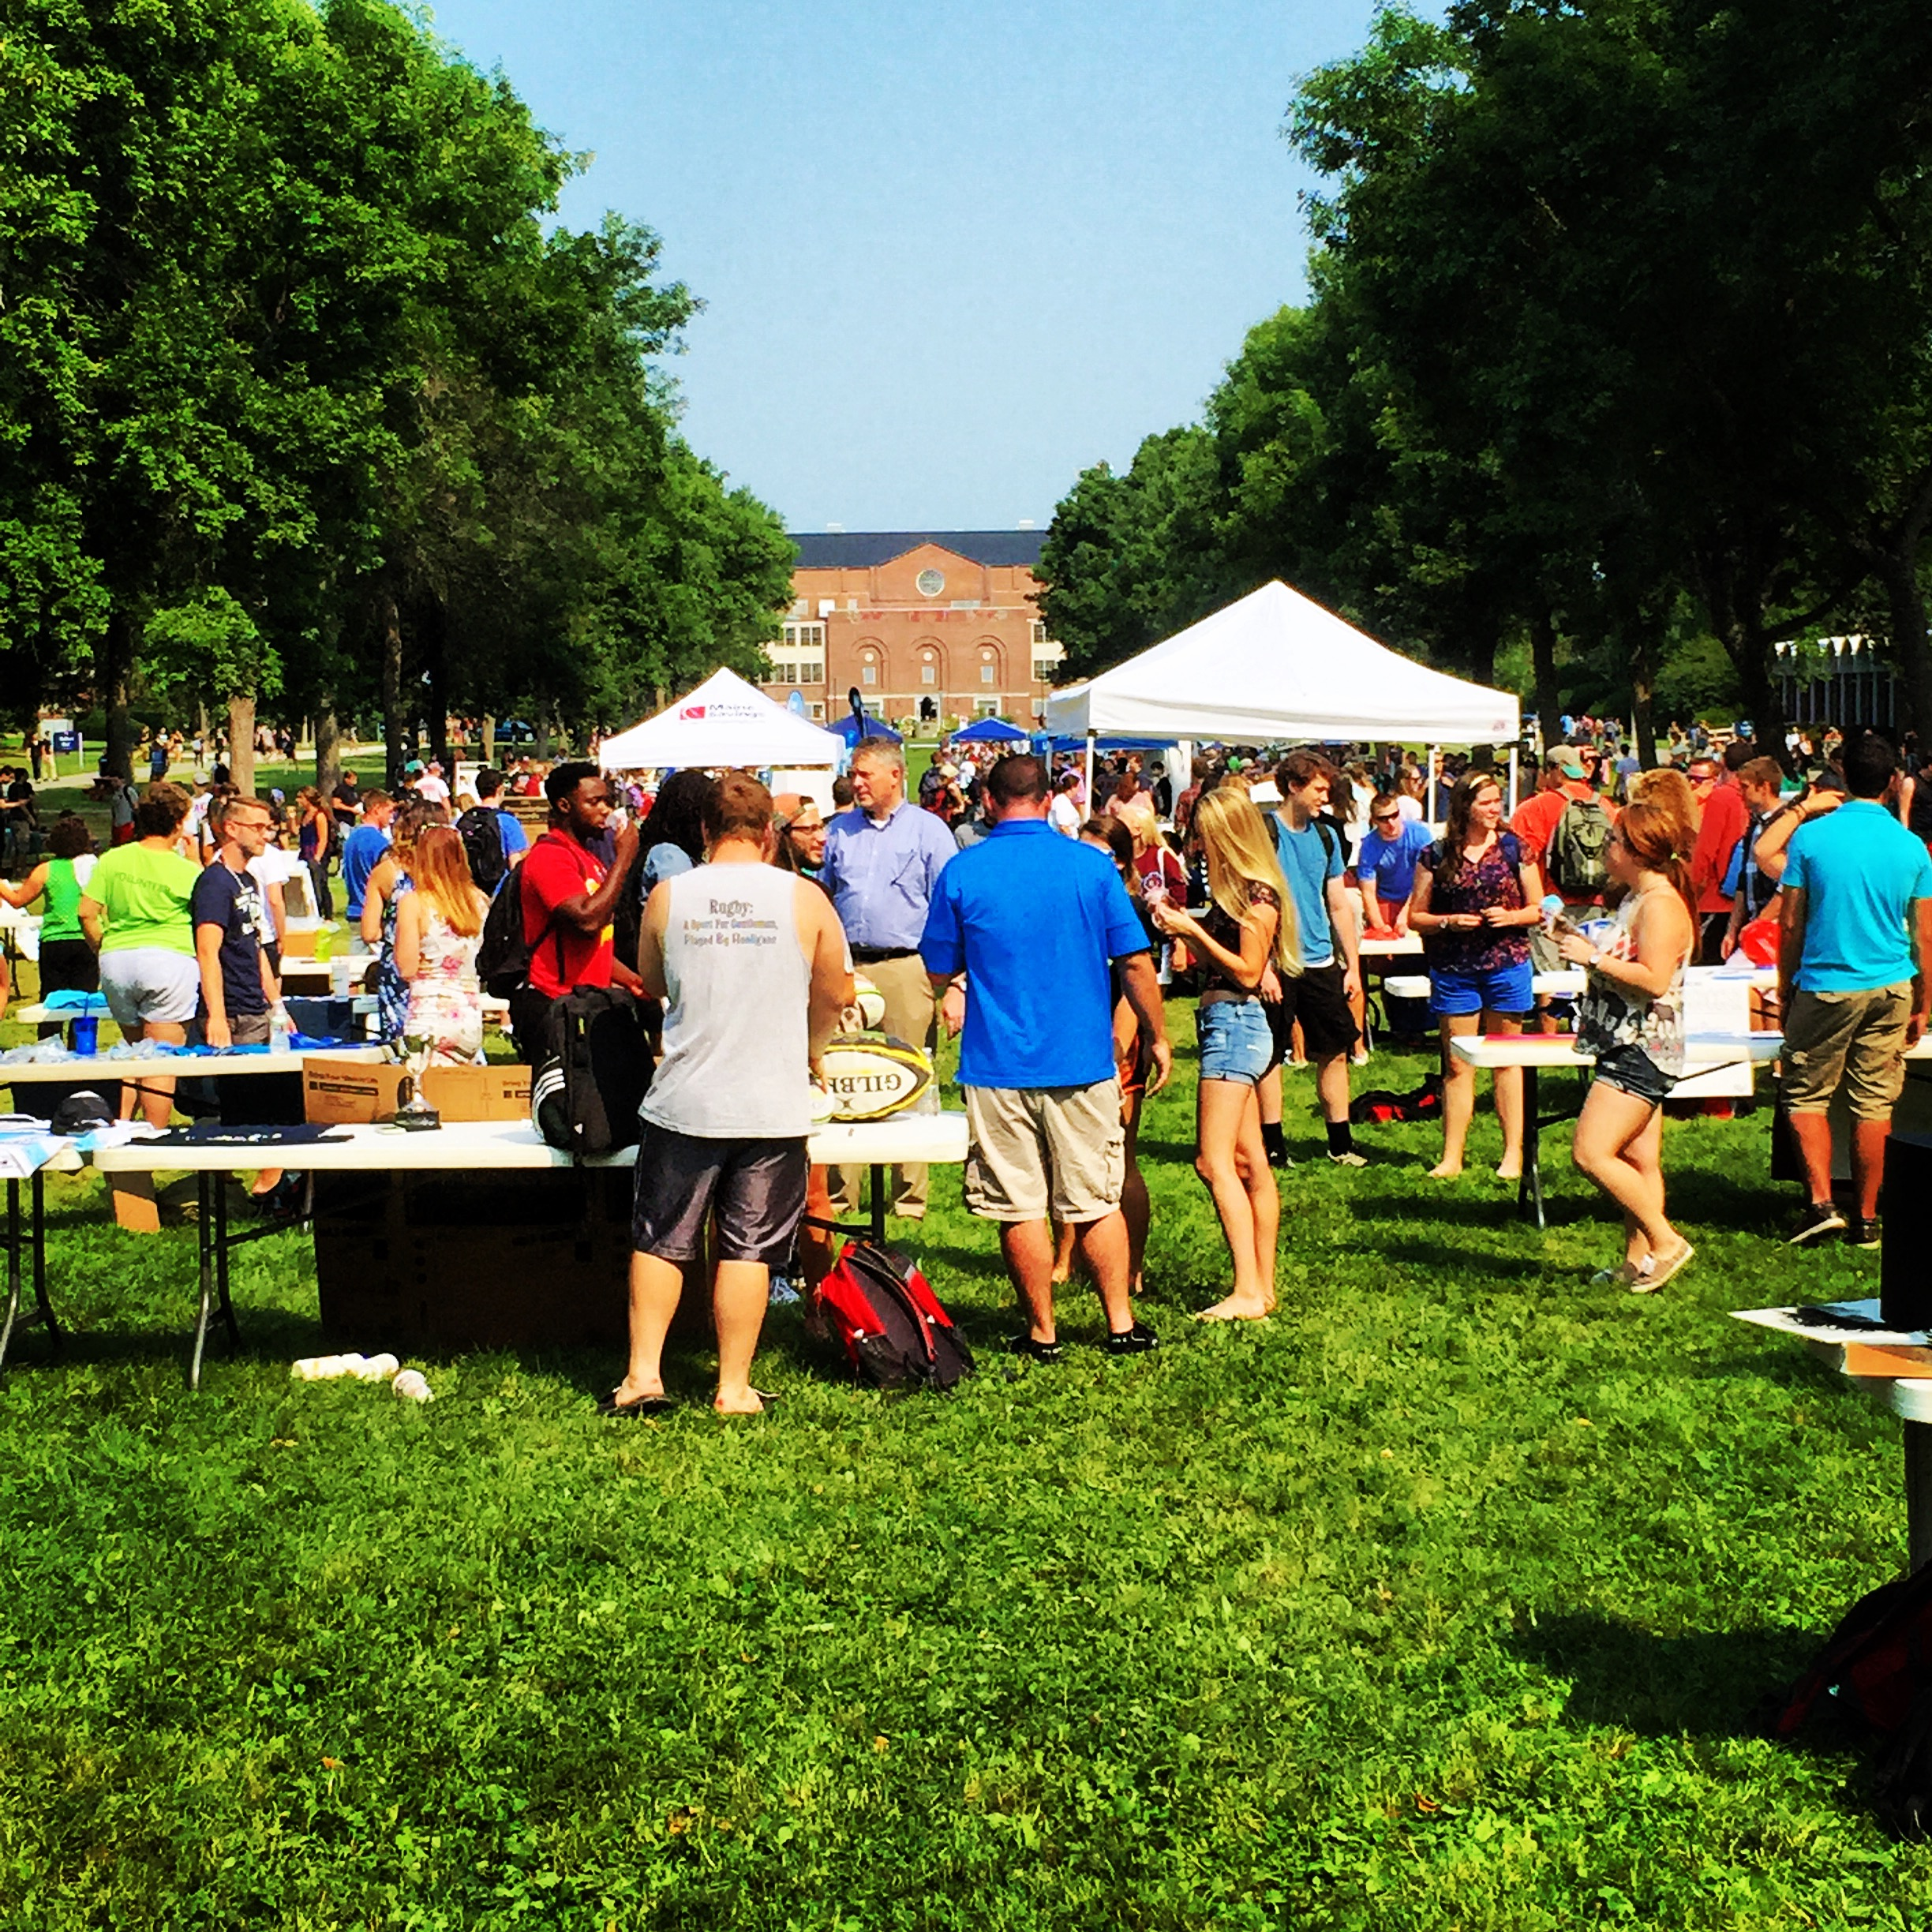 Students gathered on The Mall for the Student Organization Fair